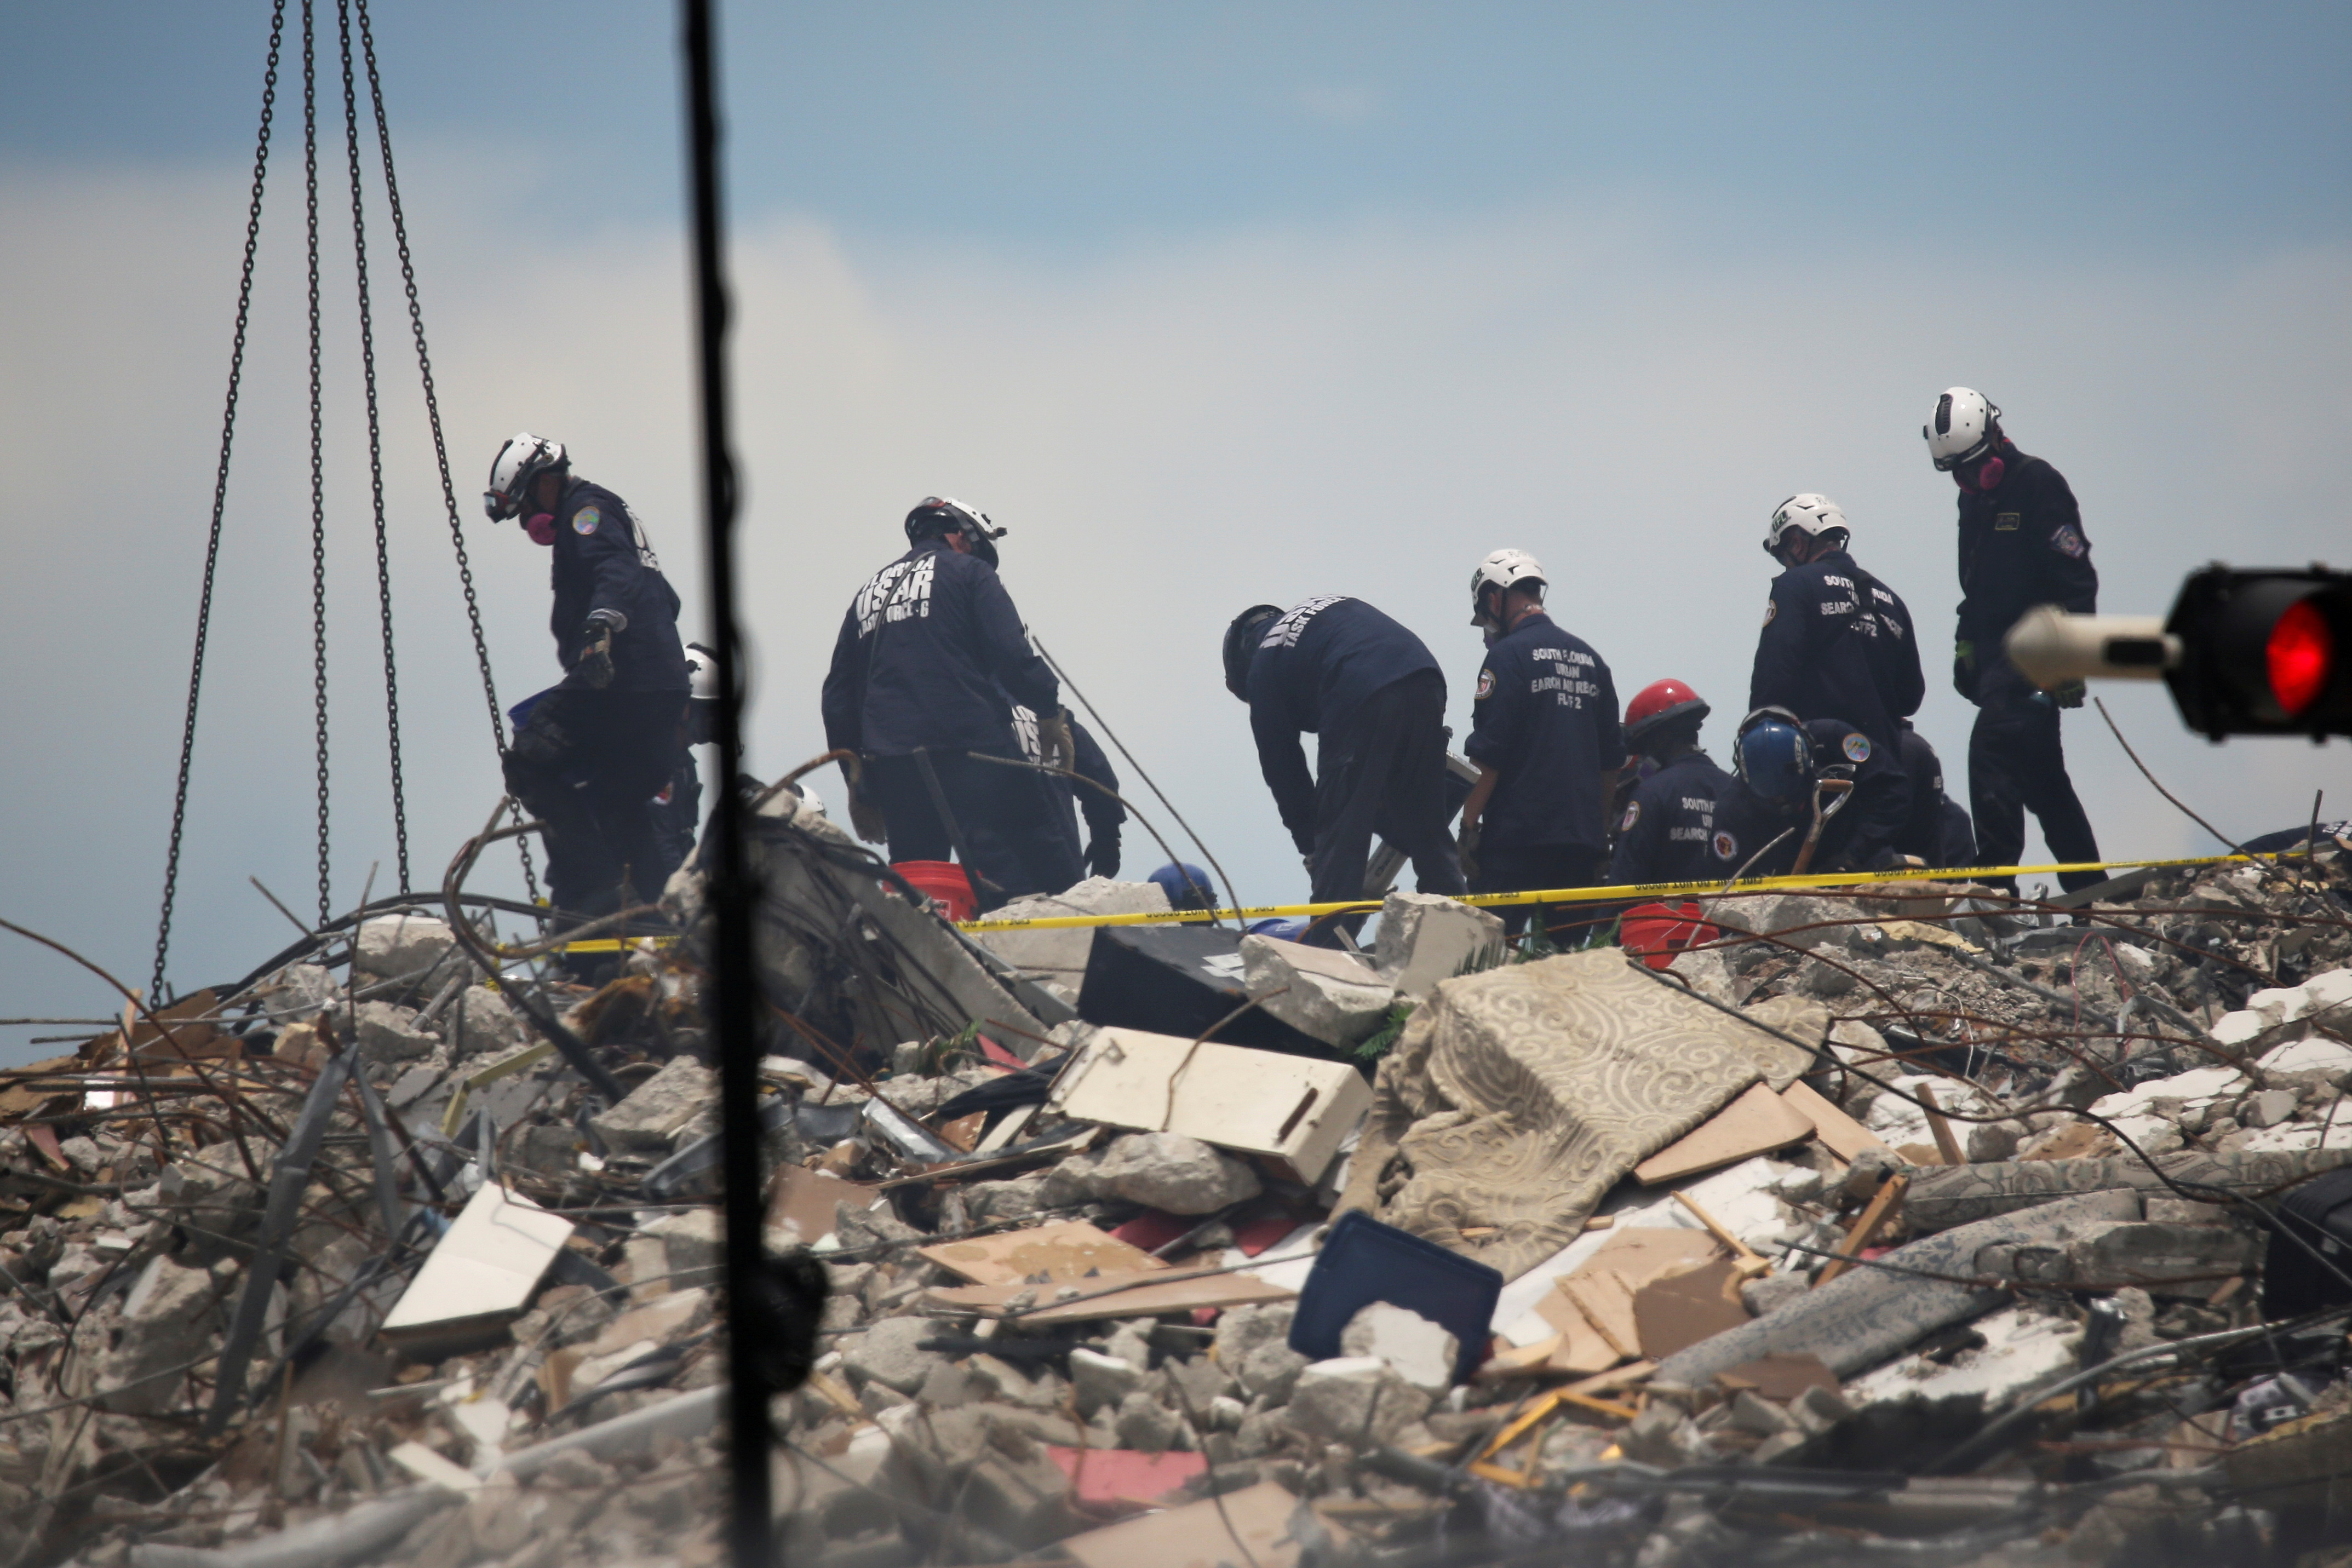 Rescue personnel continue search and rescue operations for survivors of a partially collapsed residential building in Surfside, near Miami Beach, Florida, June 26, 2021. REUTERS/Marco Bello/File Photo